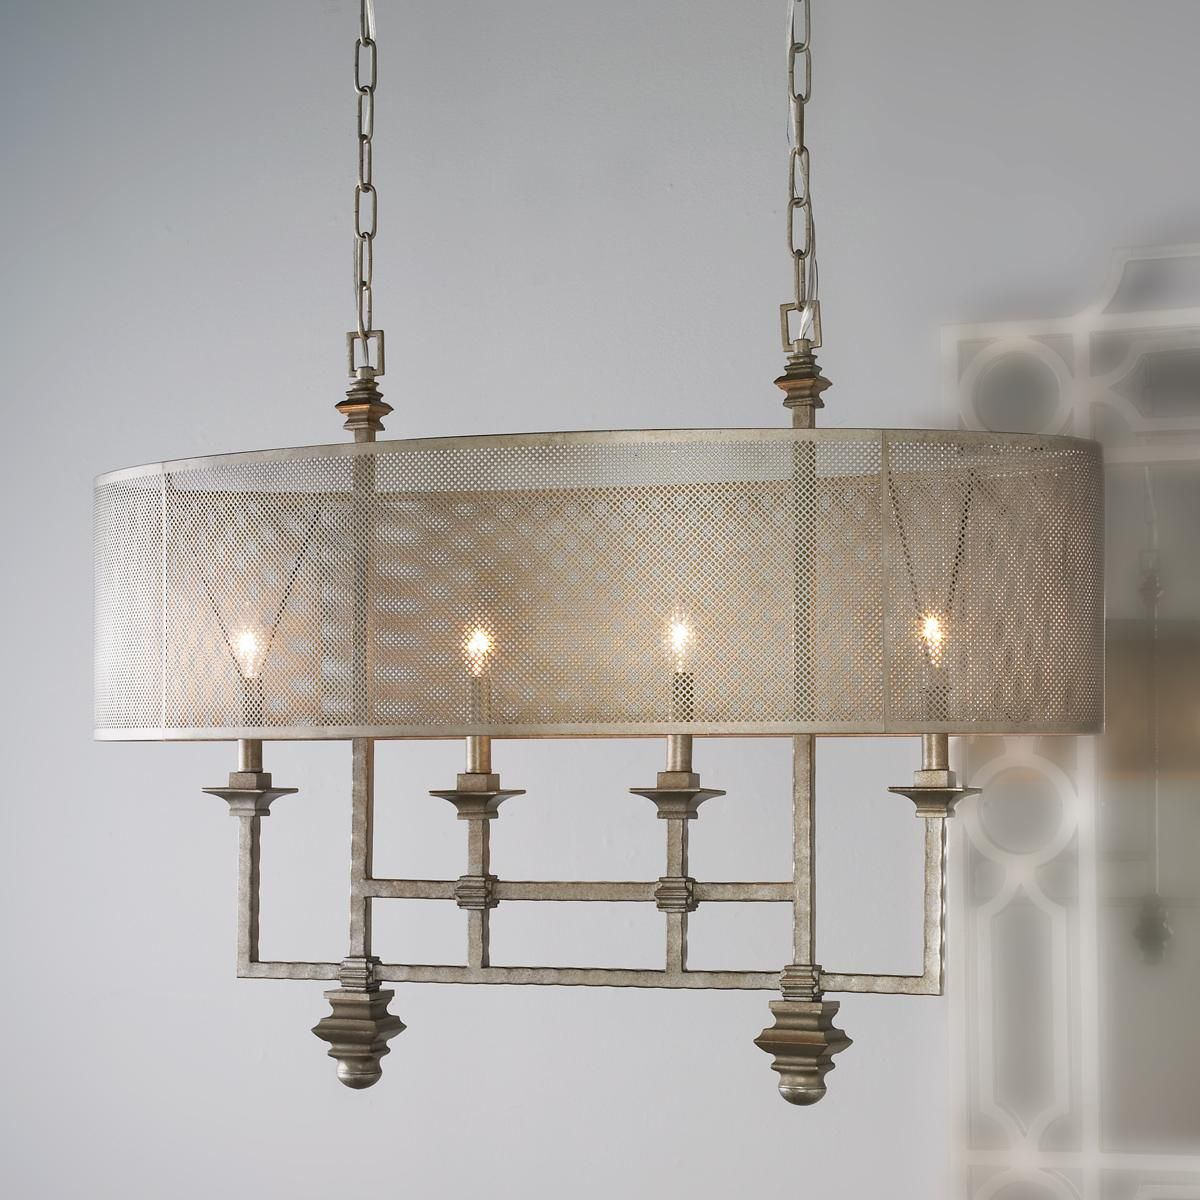 Mesh Screen Shade Chandelier An Oval Shade Of Metal Mesh Diffuses